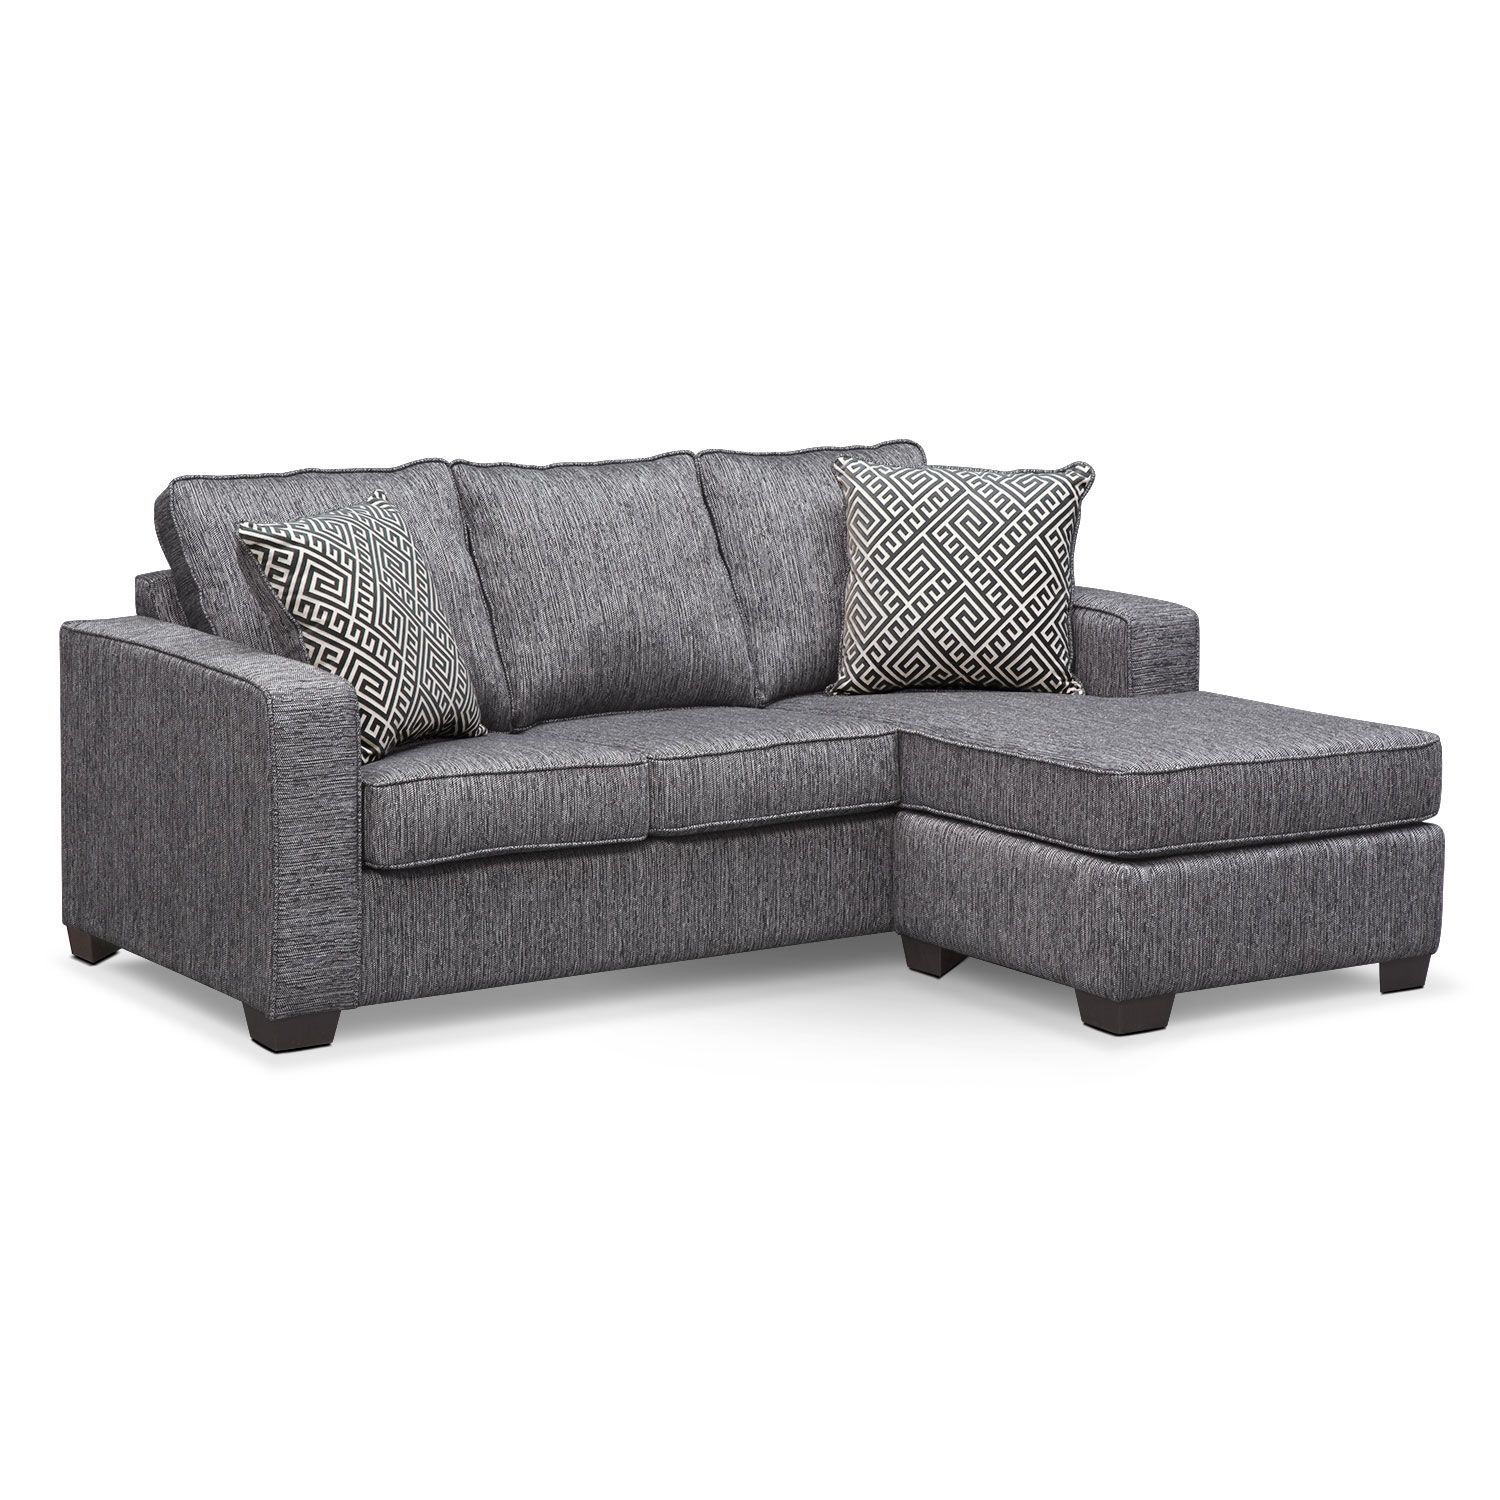 $799 99 Living Room Furniture Sterling Charcoal Queen Memory